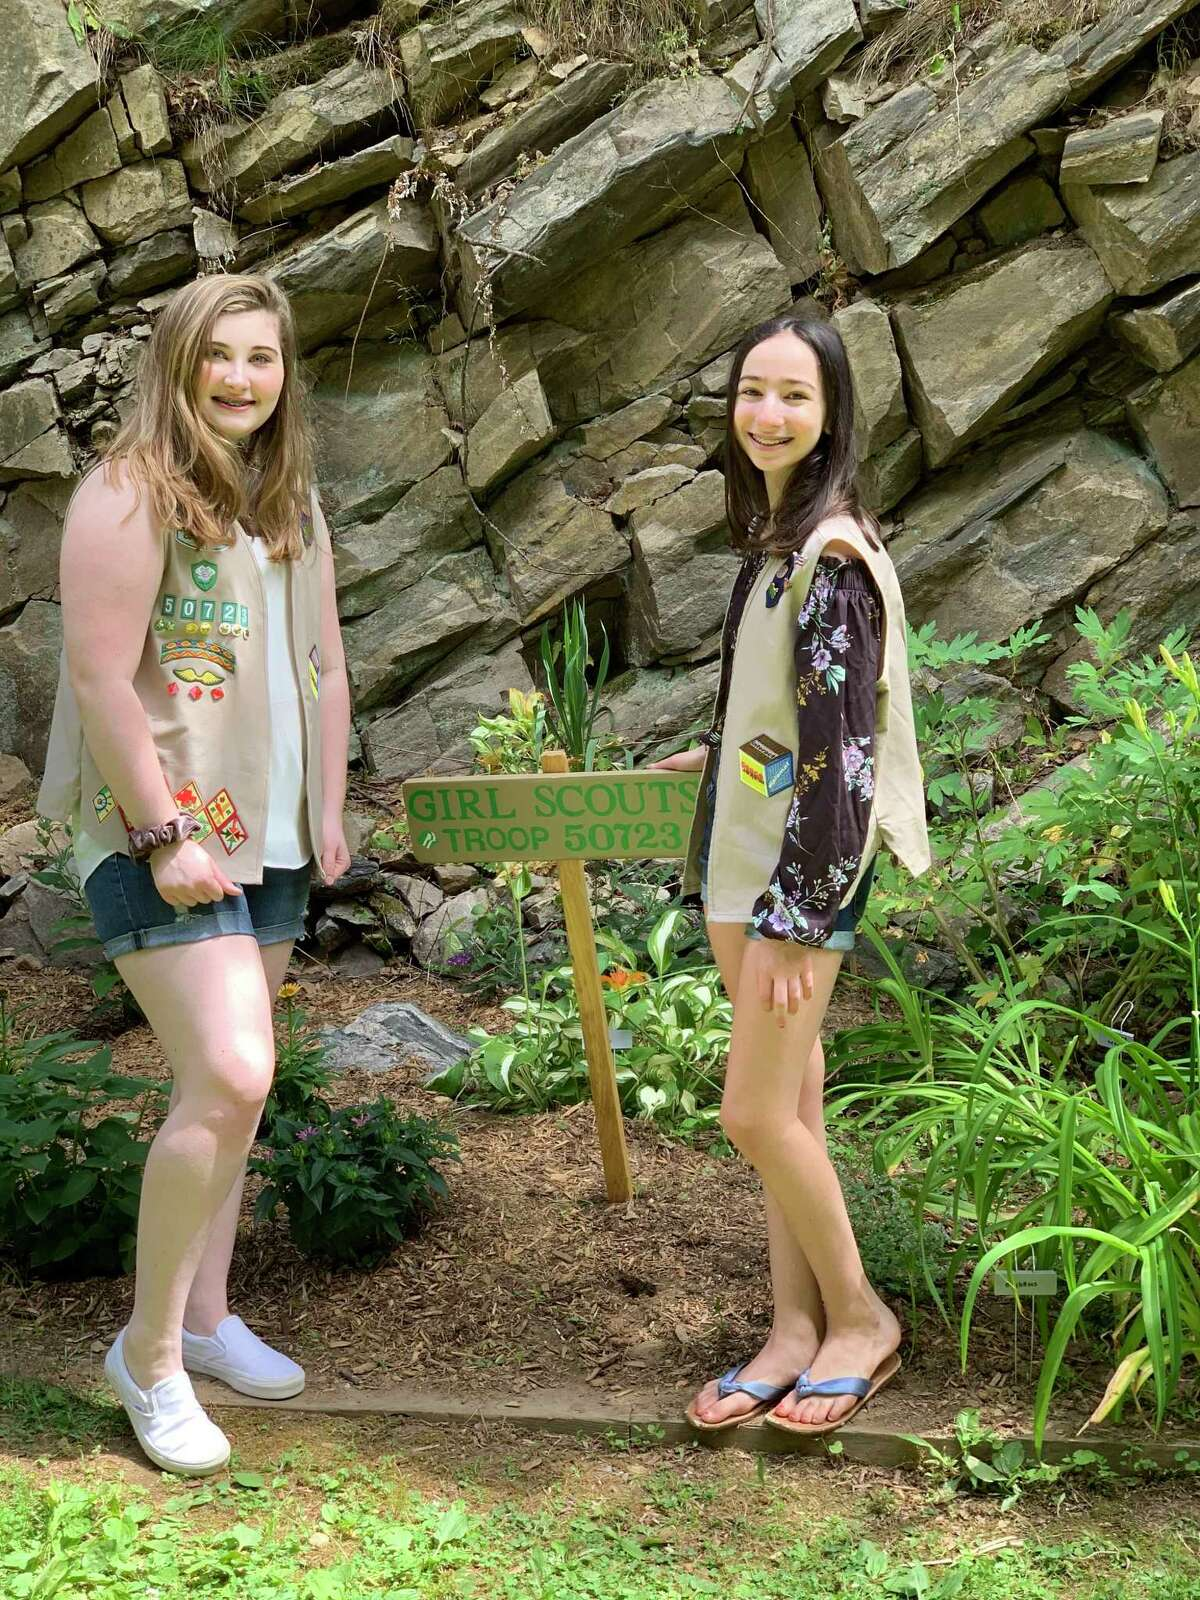 Saint Mary Ridgefield Troop 50723 Girl Scouts Julia Jamba and Isabella Raduazzo stand in front of the pollinator garden they installed at Congregate Housing Prospect Ridge, RHA.